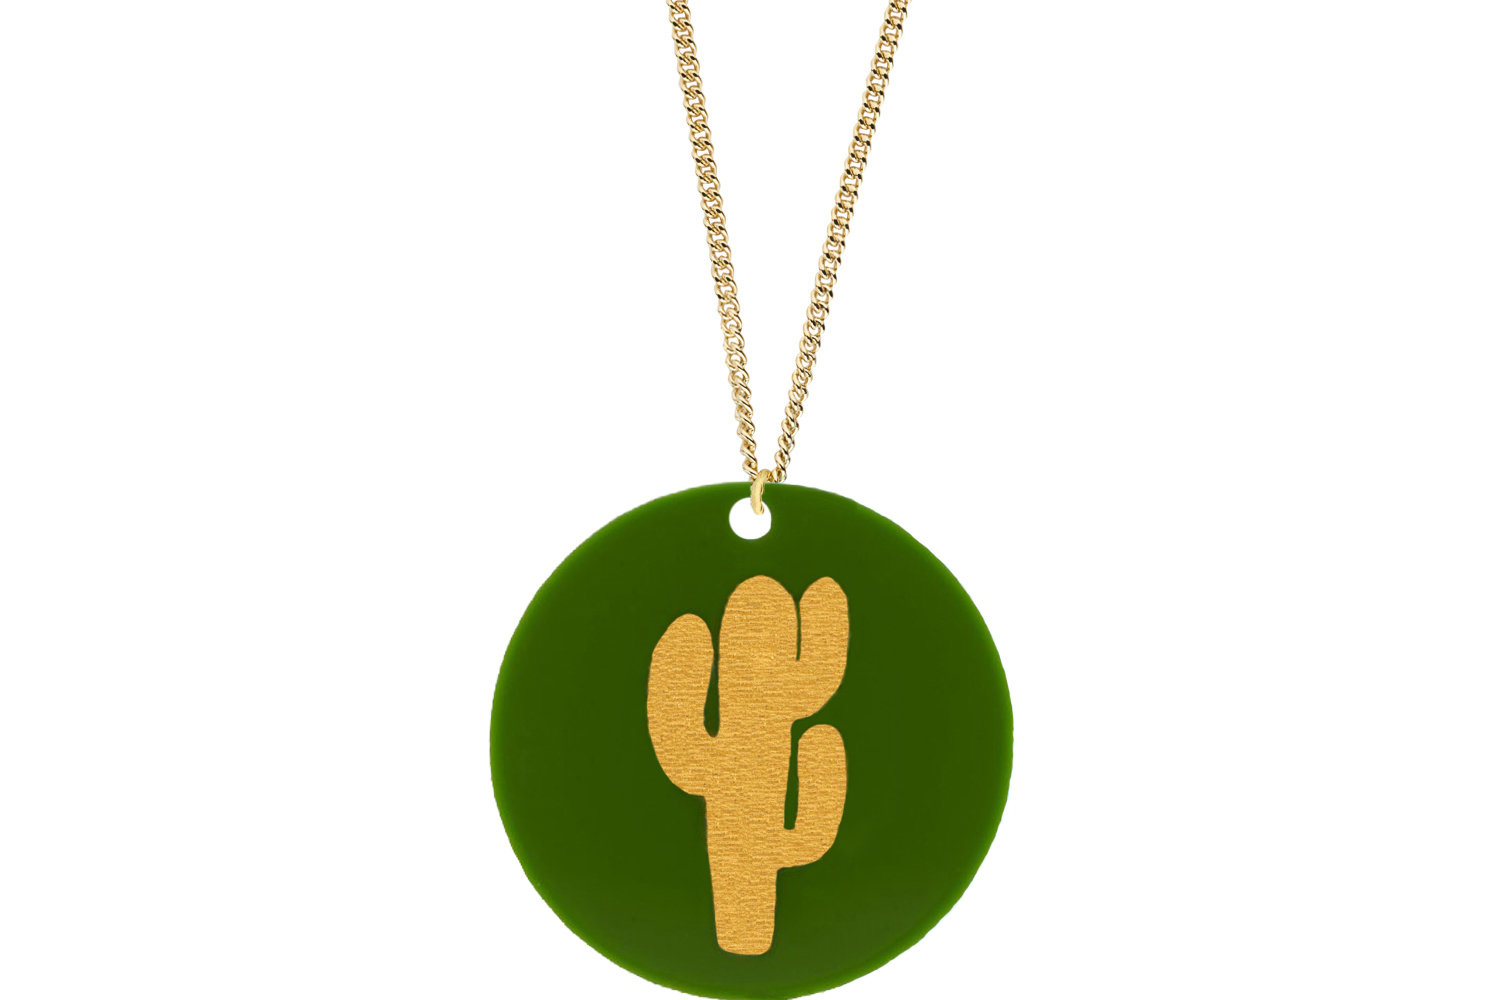 Cactus Pendant Subtle Style Refined with Paint on Chain Necklace